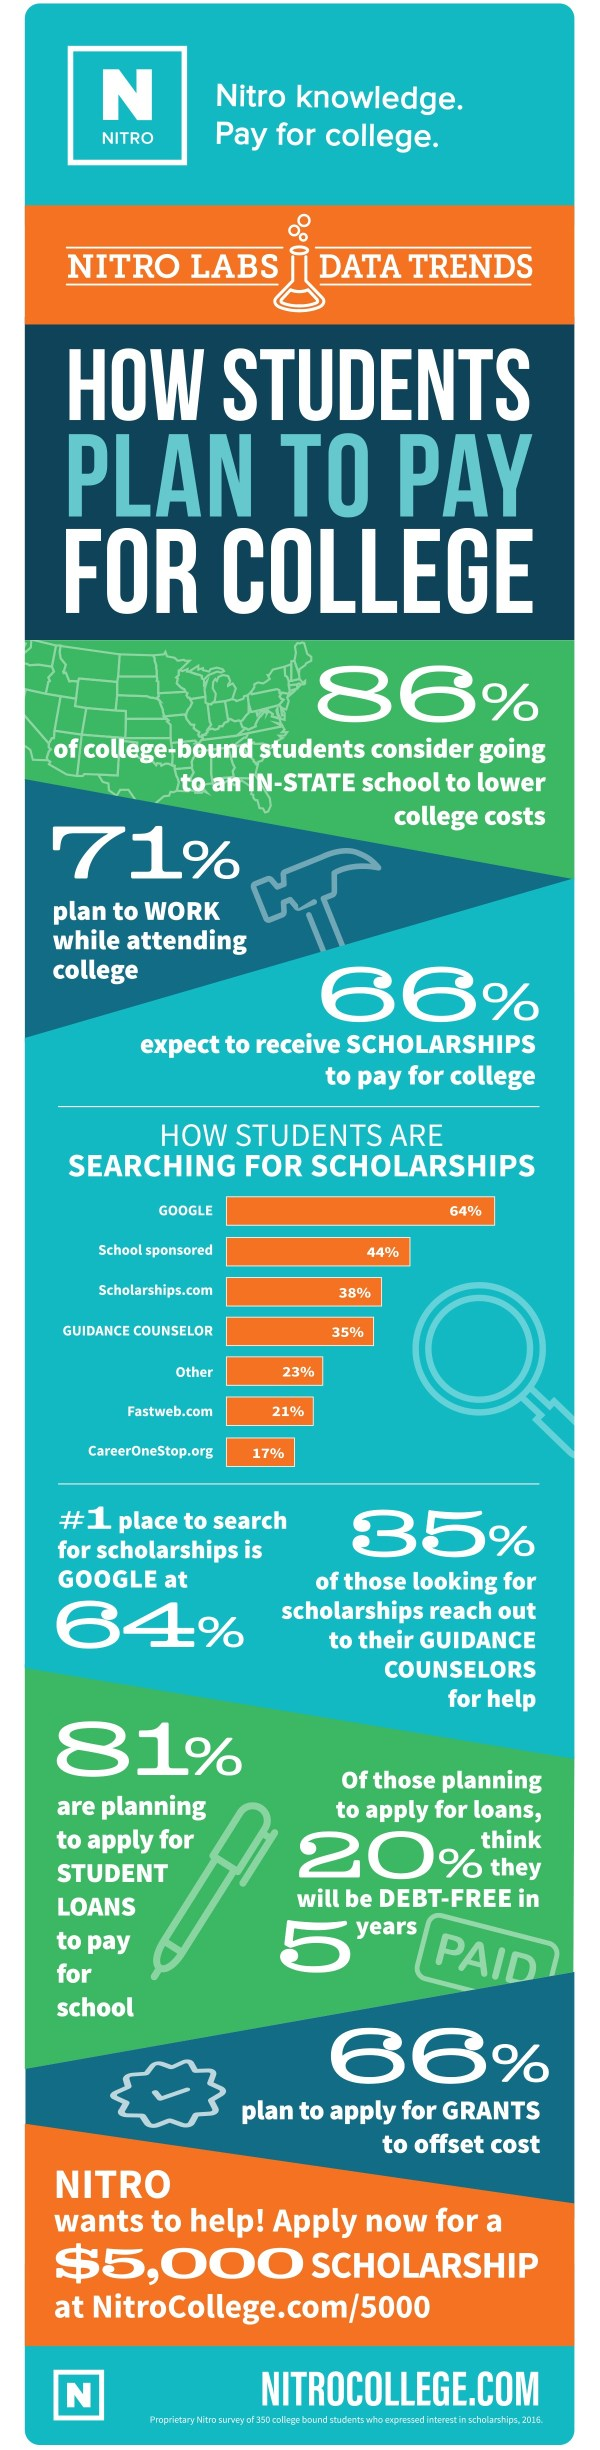 How Students Plan To Pay For College [Infographic]